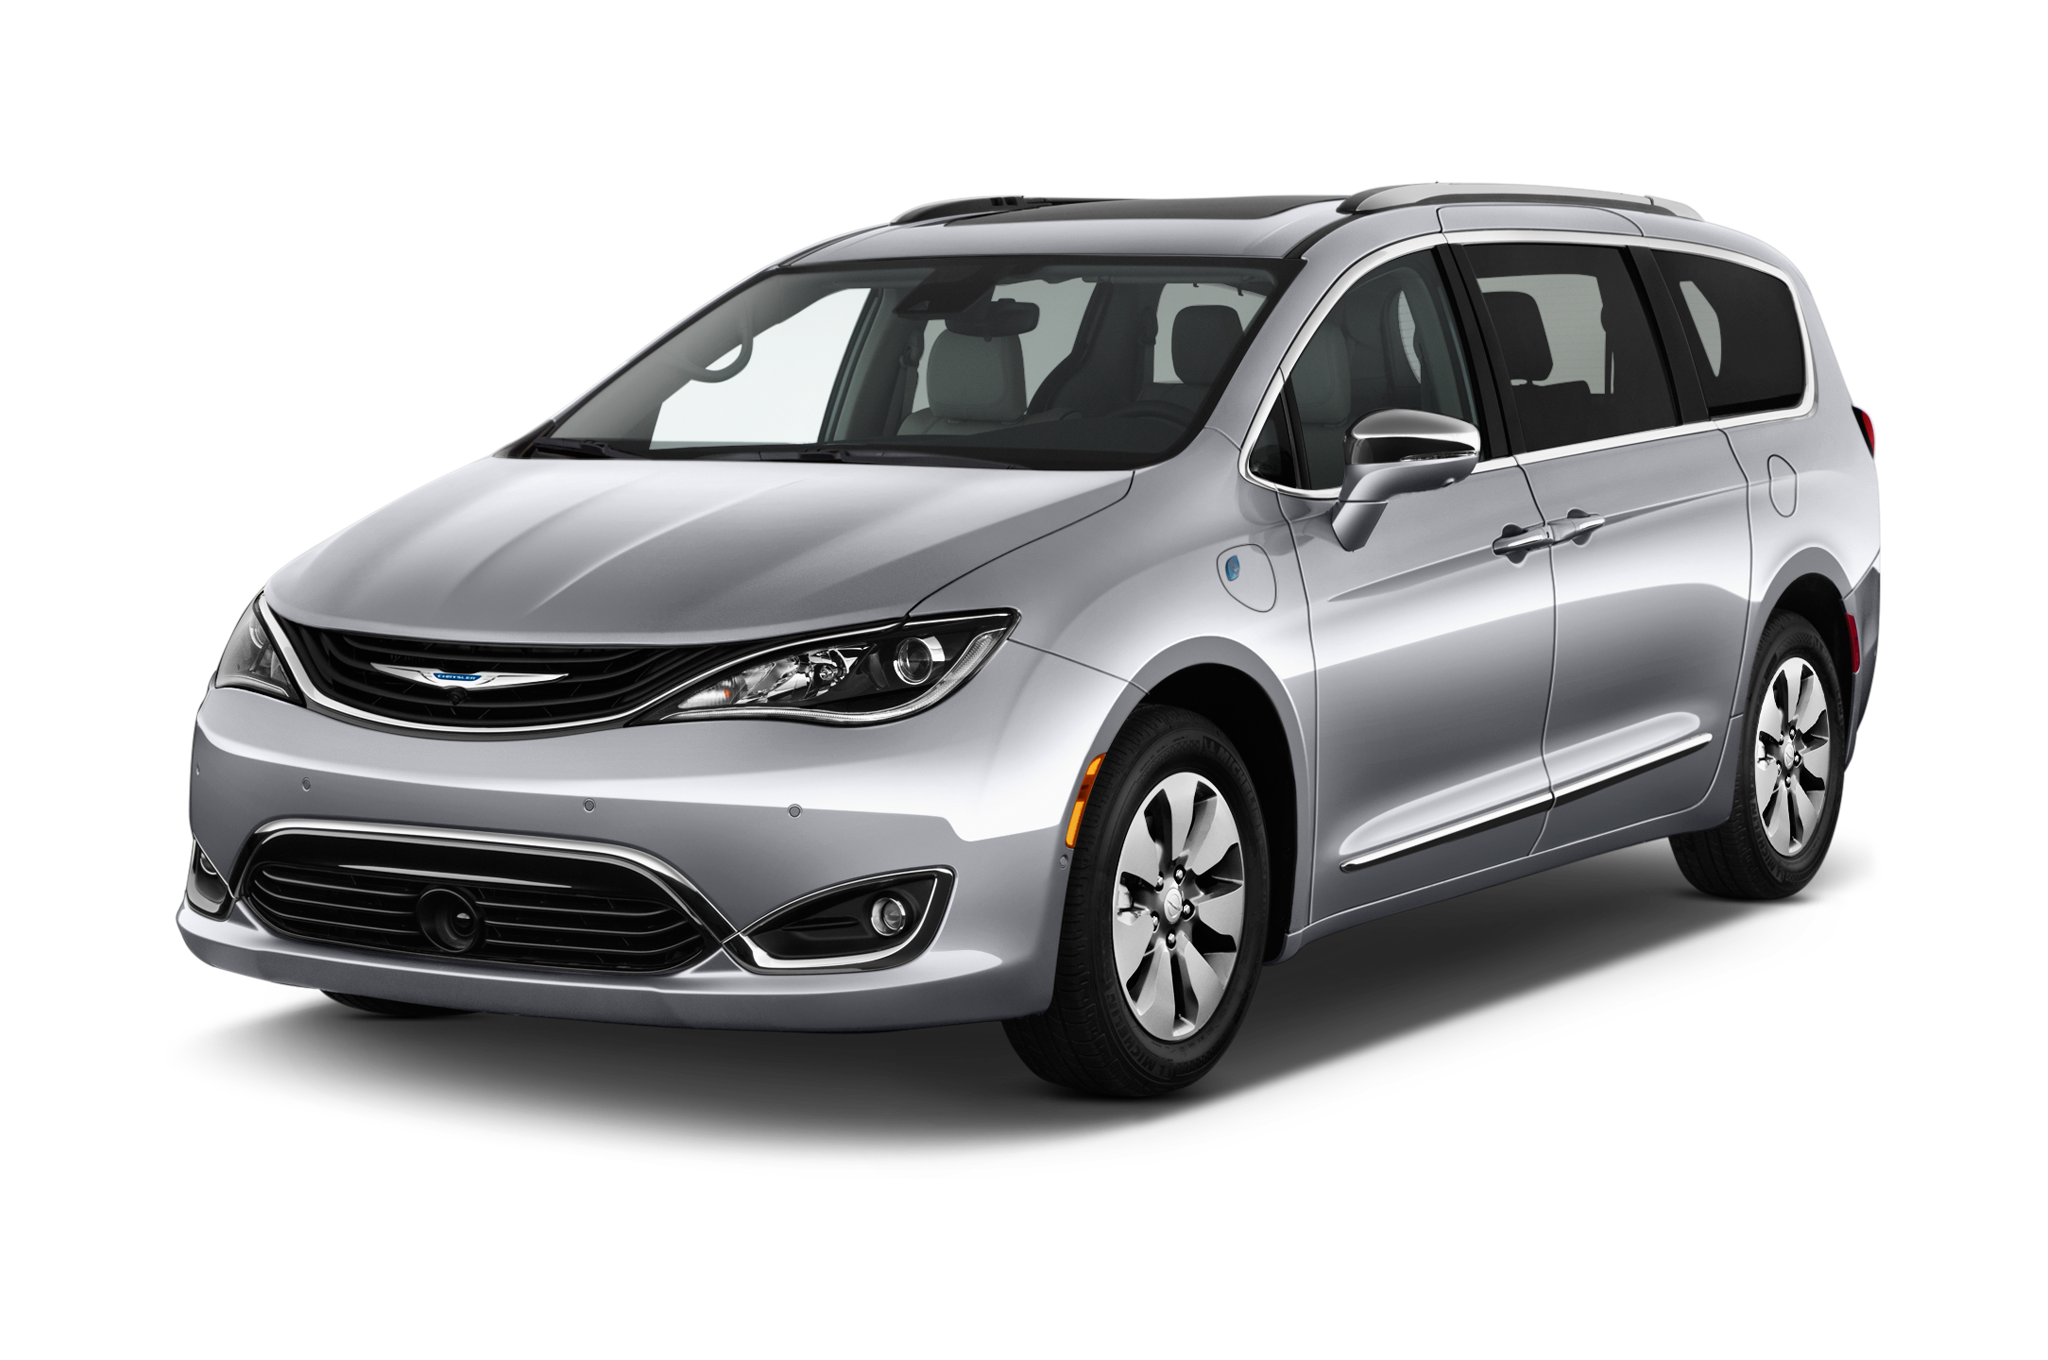 2017 Chrysler Pacifica Plug-in